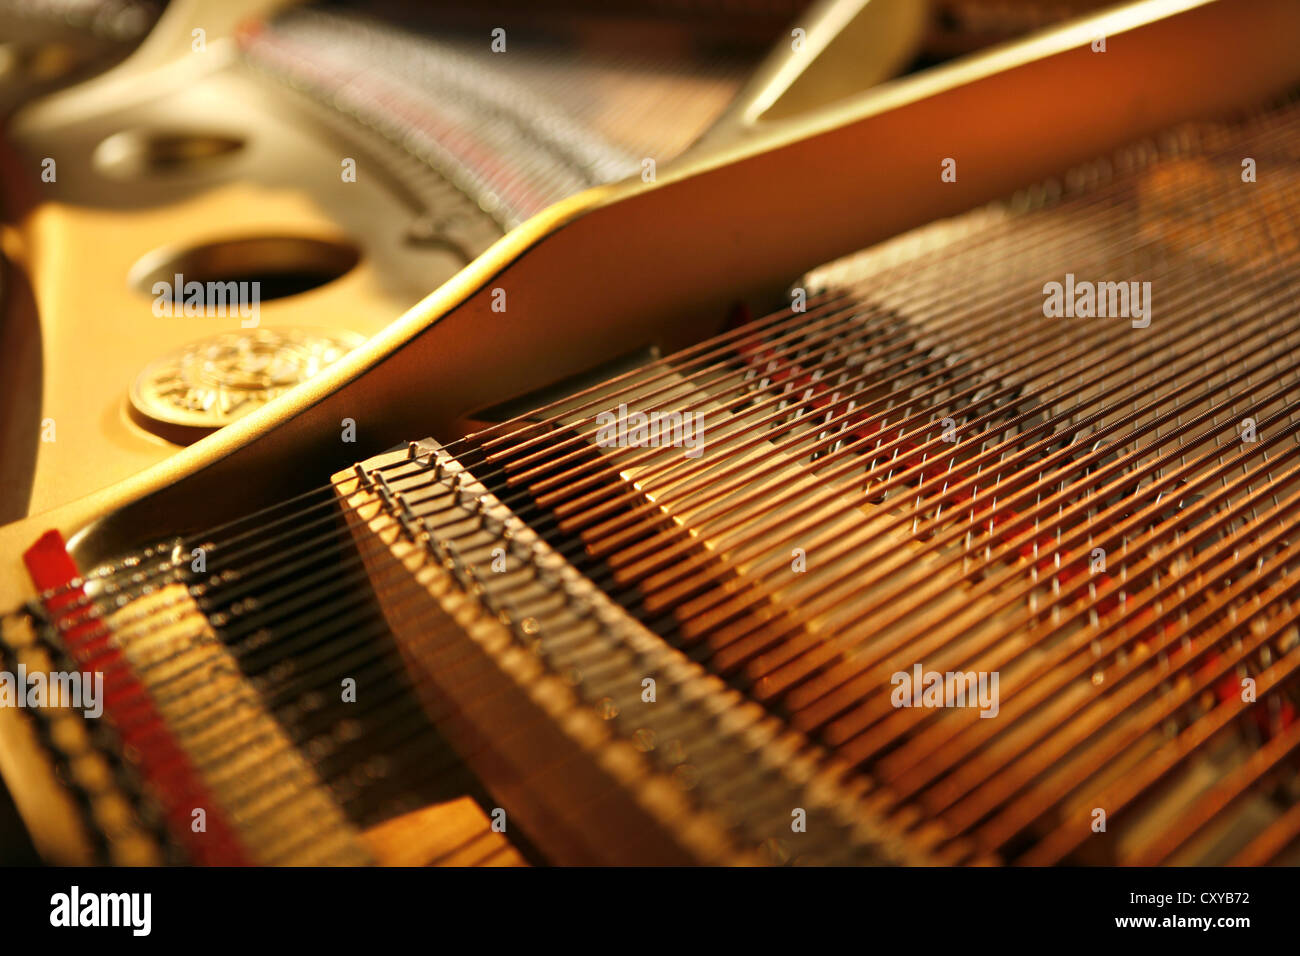 Strings of a piano - Stock Image